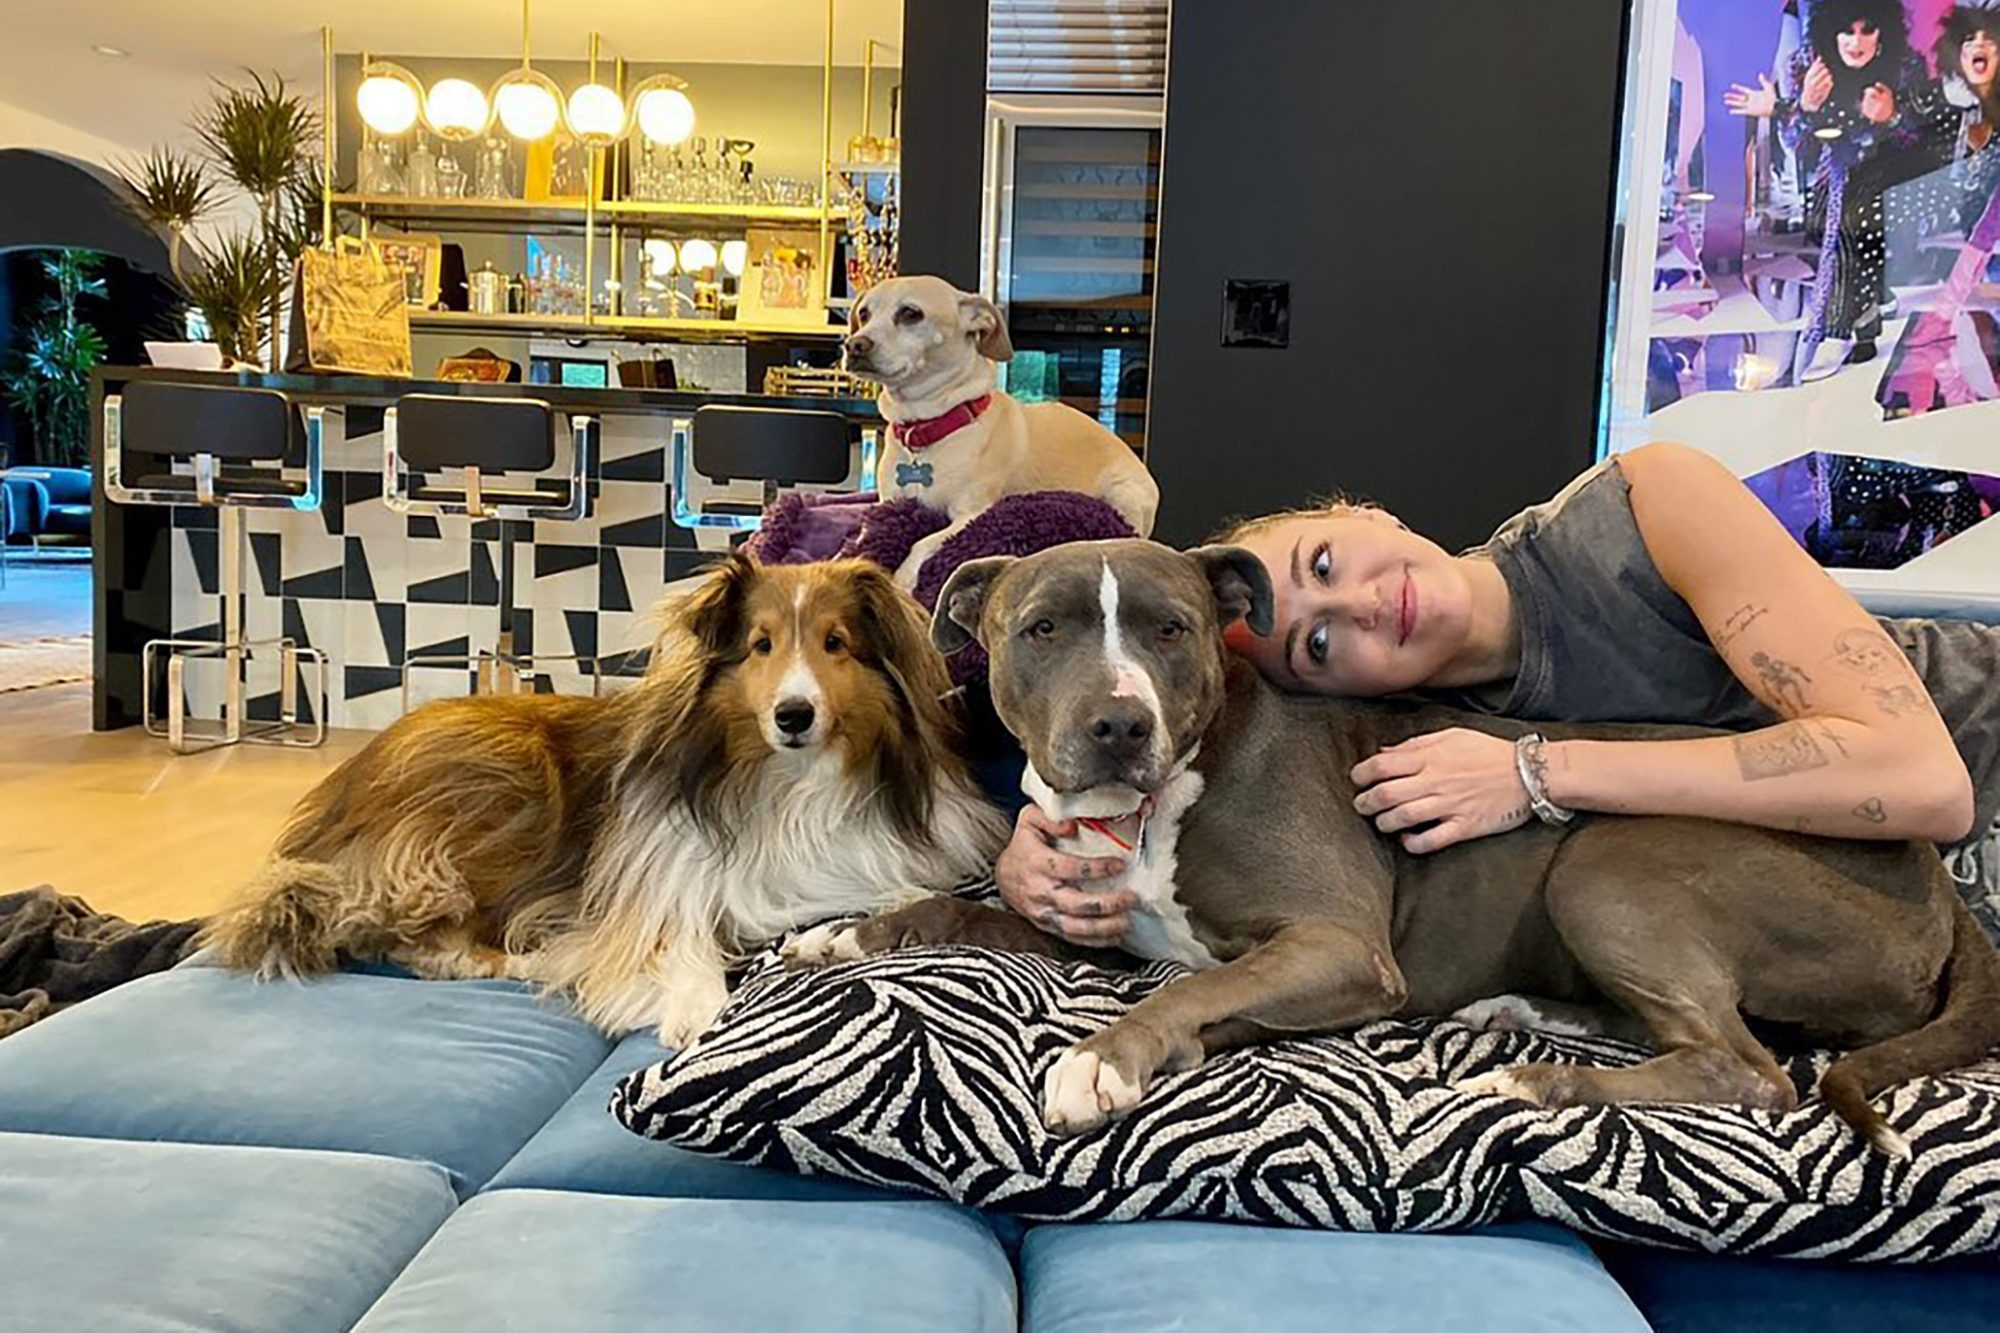 Picture of singer Miley Cyrus cuddling with three dogs on couch in home